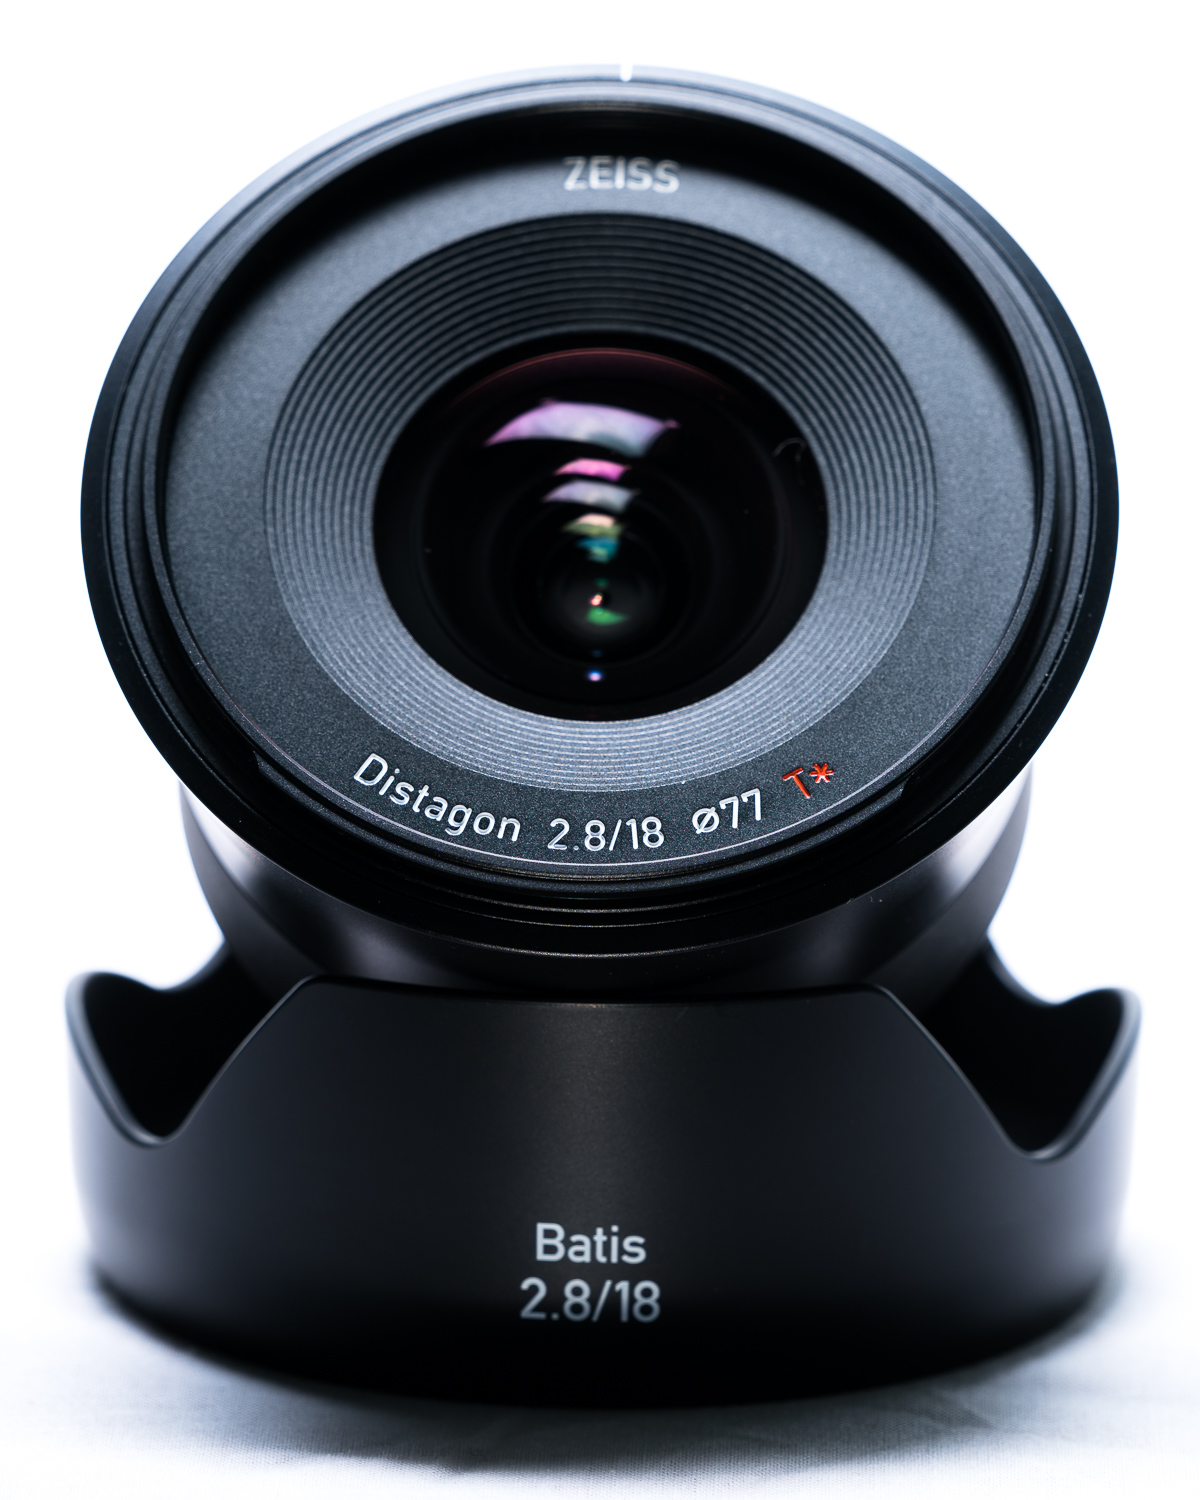 My product photography image of my *used* lens ended up as Amazon's listing image for the new version...